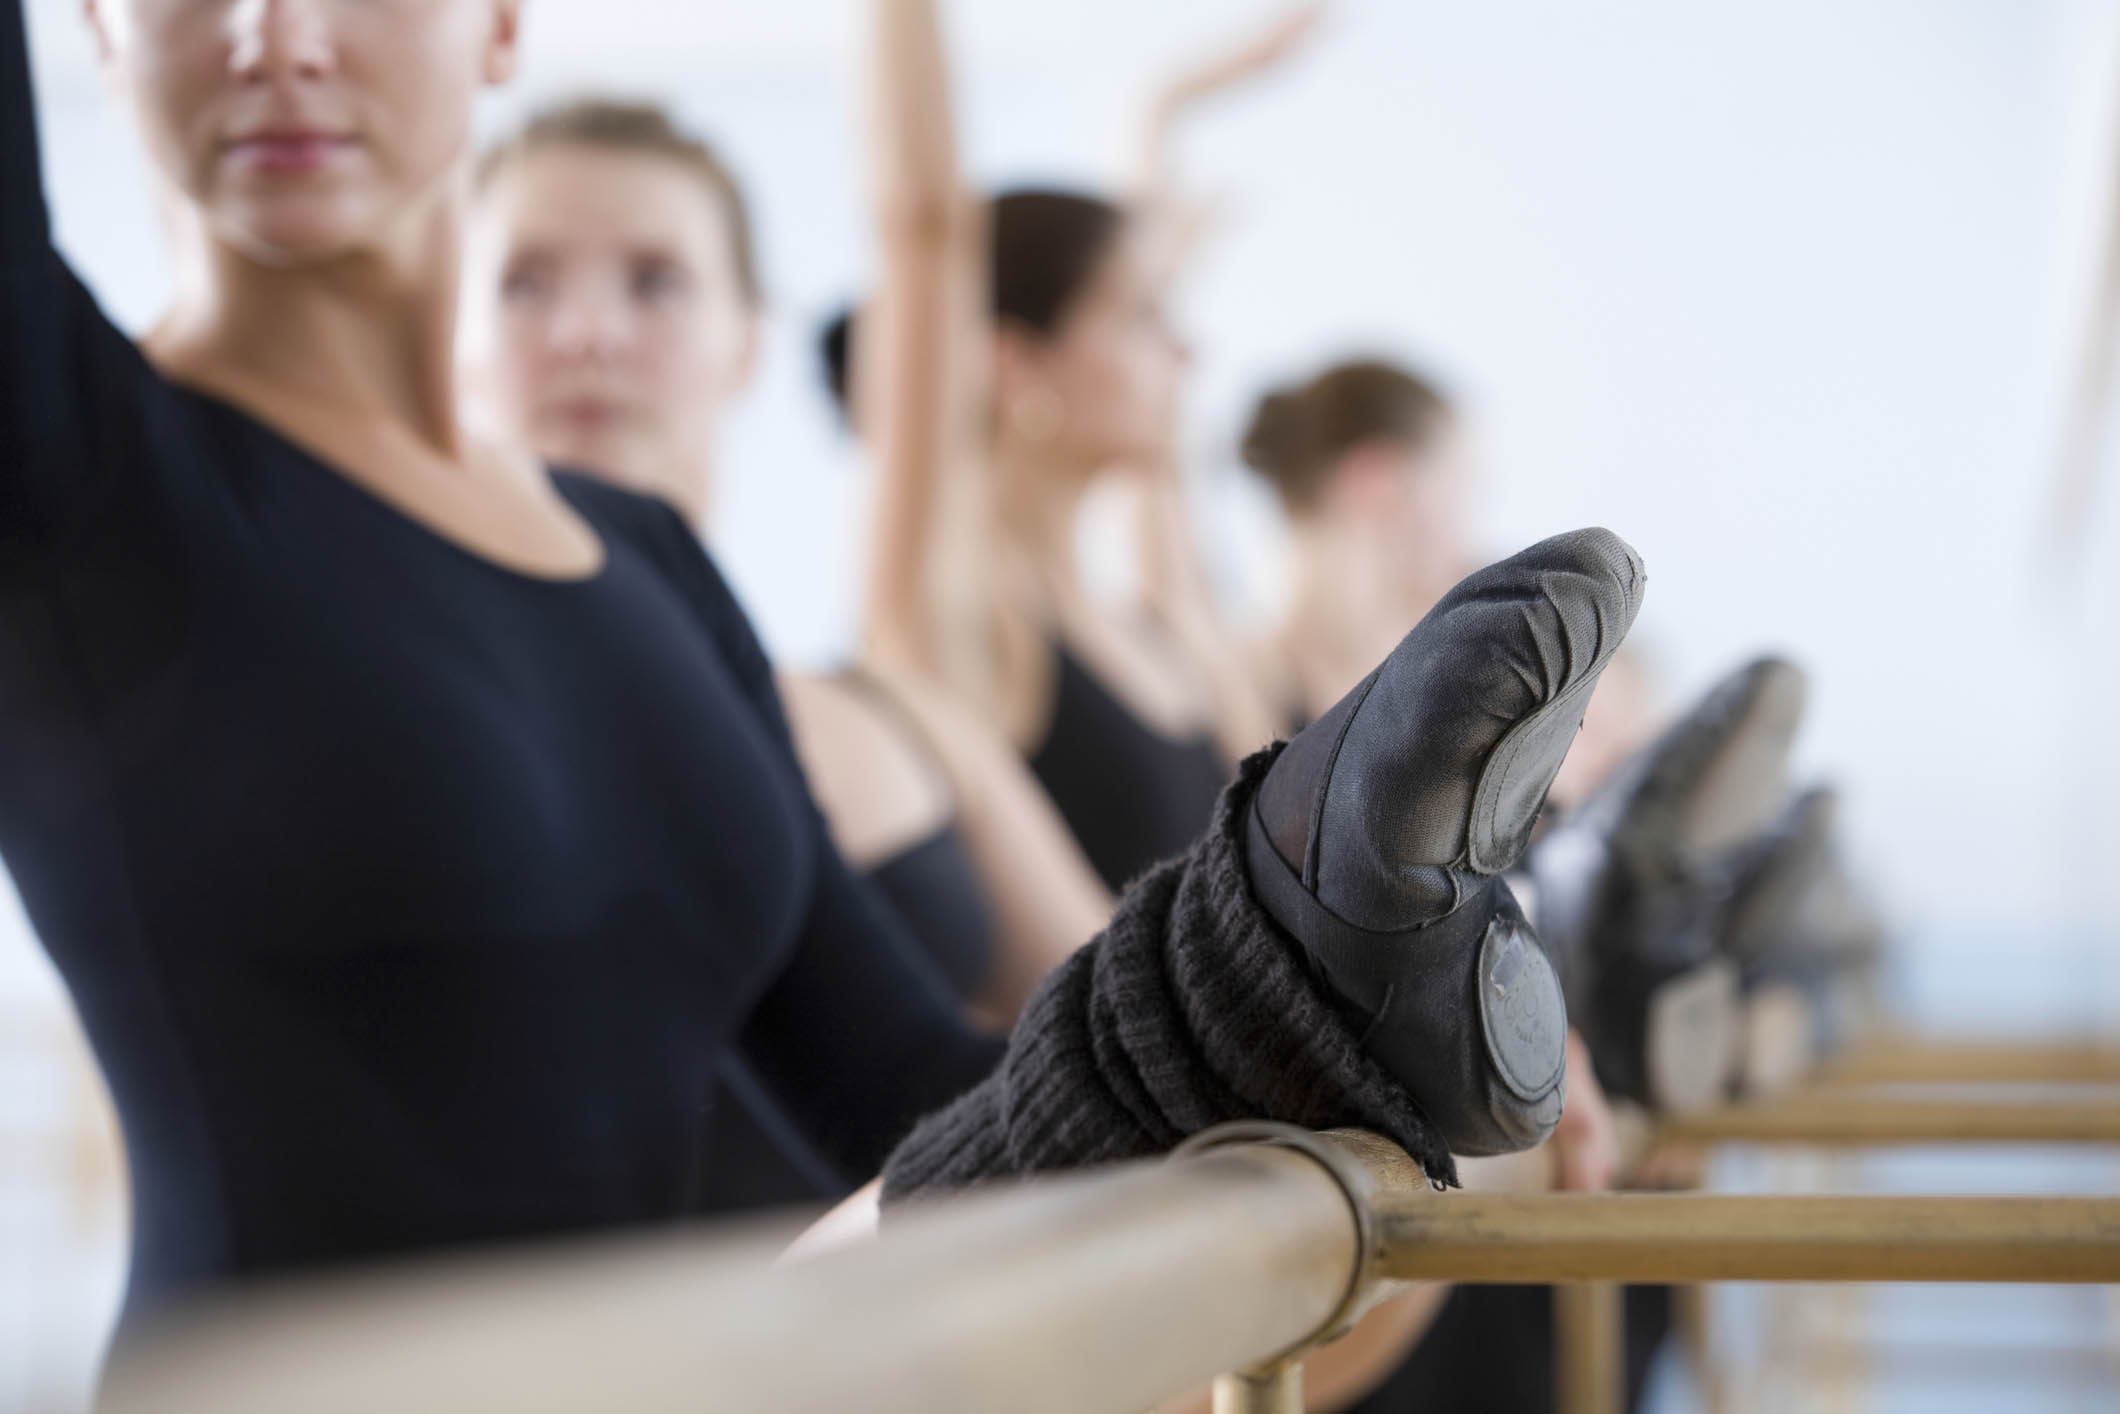 You can study ballet with limited flexibility and get more fit